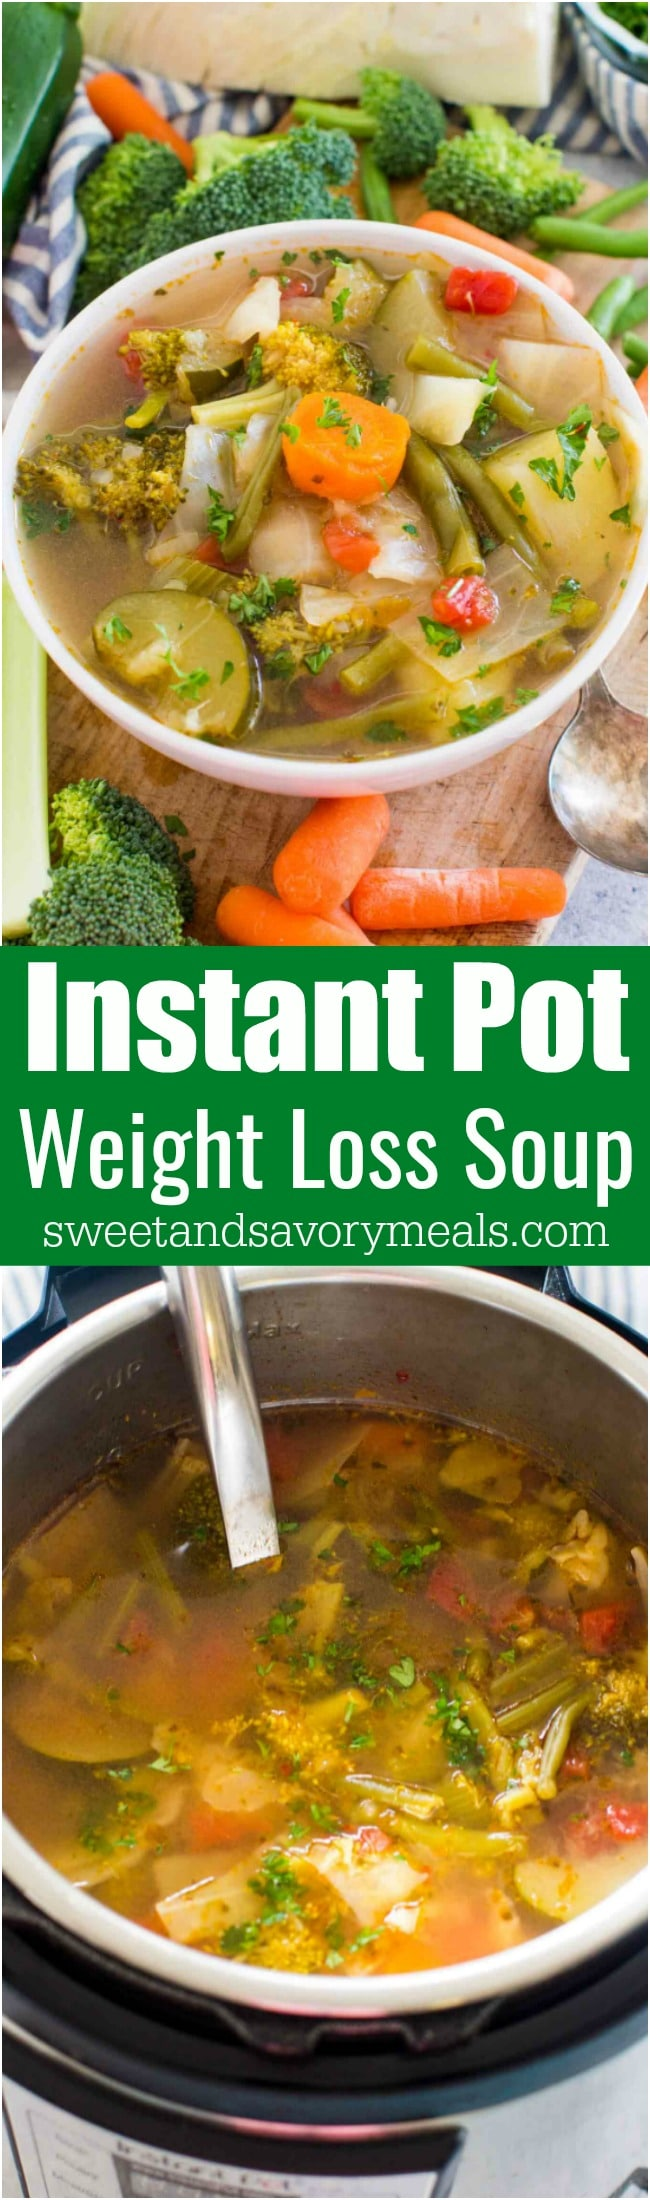 Skinny Instant Pot Weight Loss Soup is a very easy to make veggie soup that packs lots of nutrients and fiber to keep you full and boost your energy.